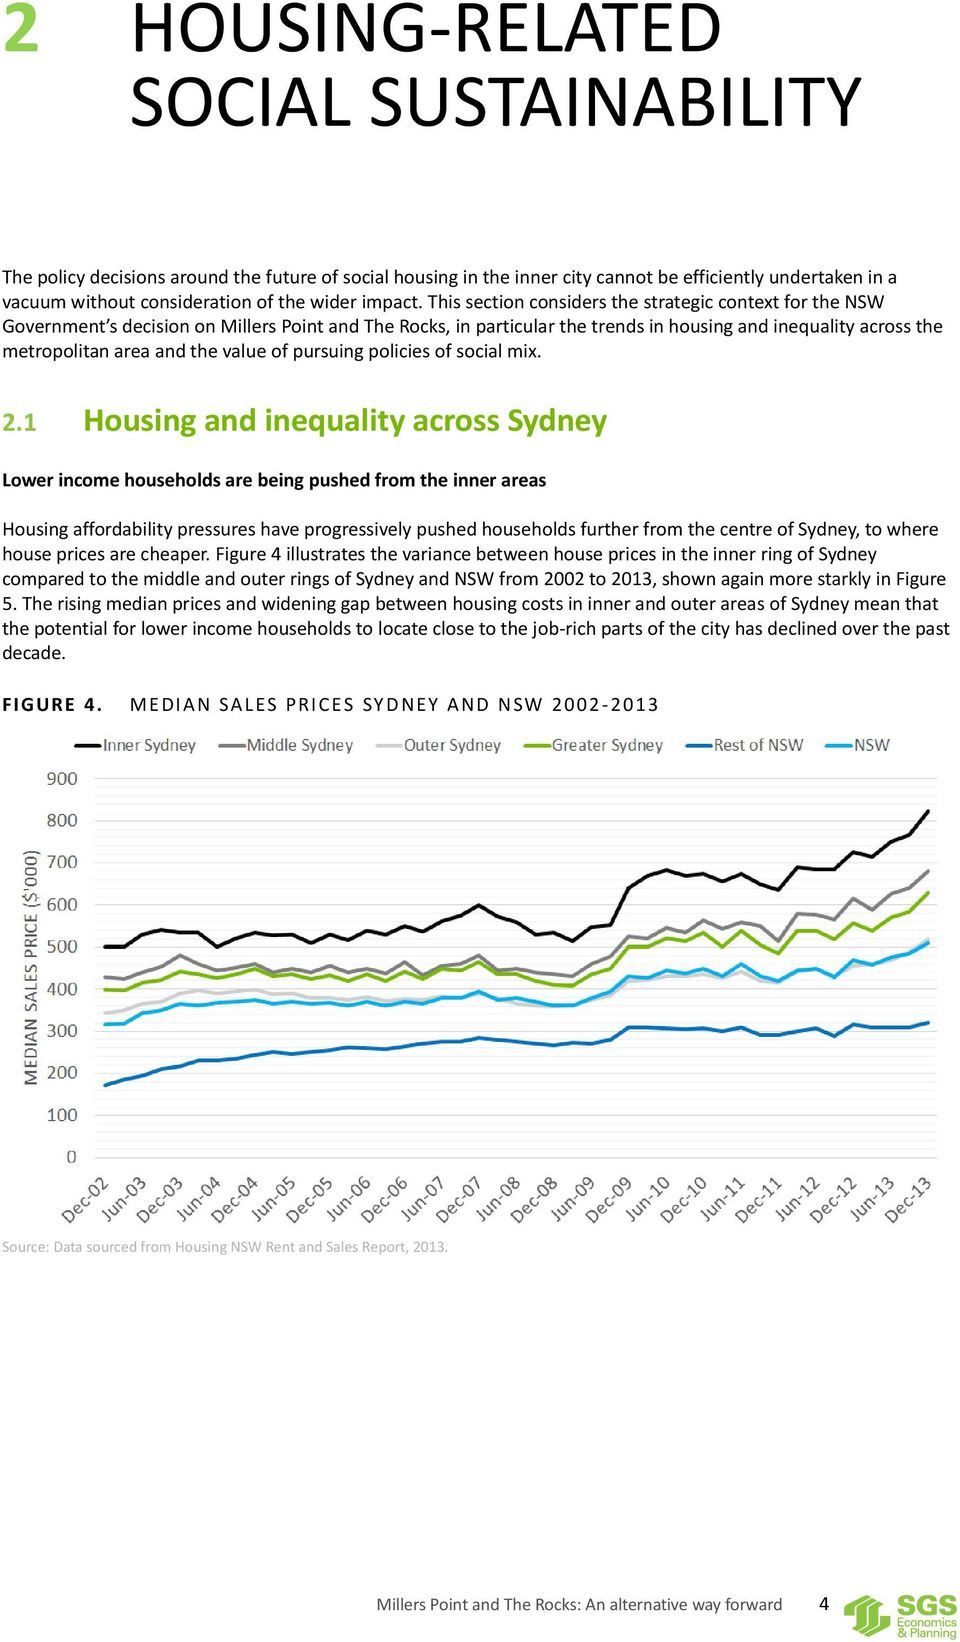 This section considers the strategic context for the NSW Government s decision on Millers Point and The Rocks, in particular the trends in housing and inequality across the metropolitan area and the